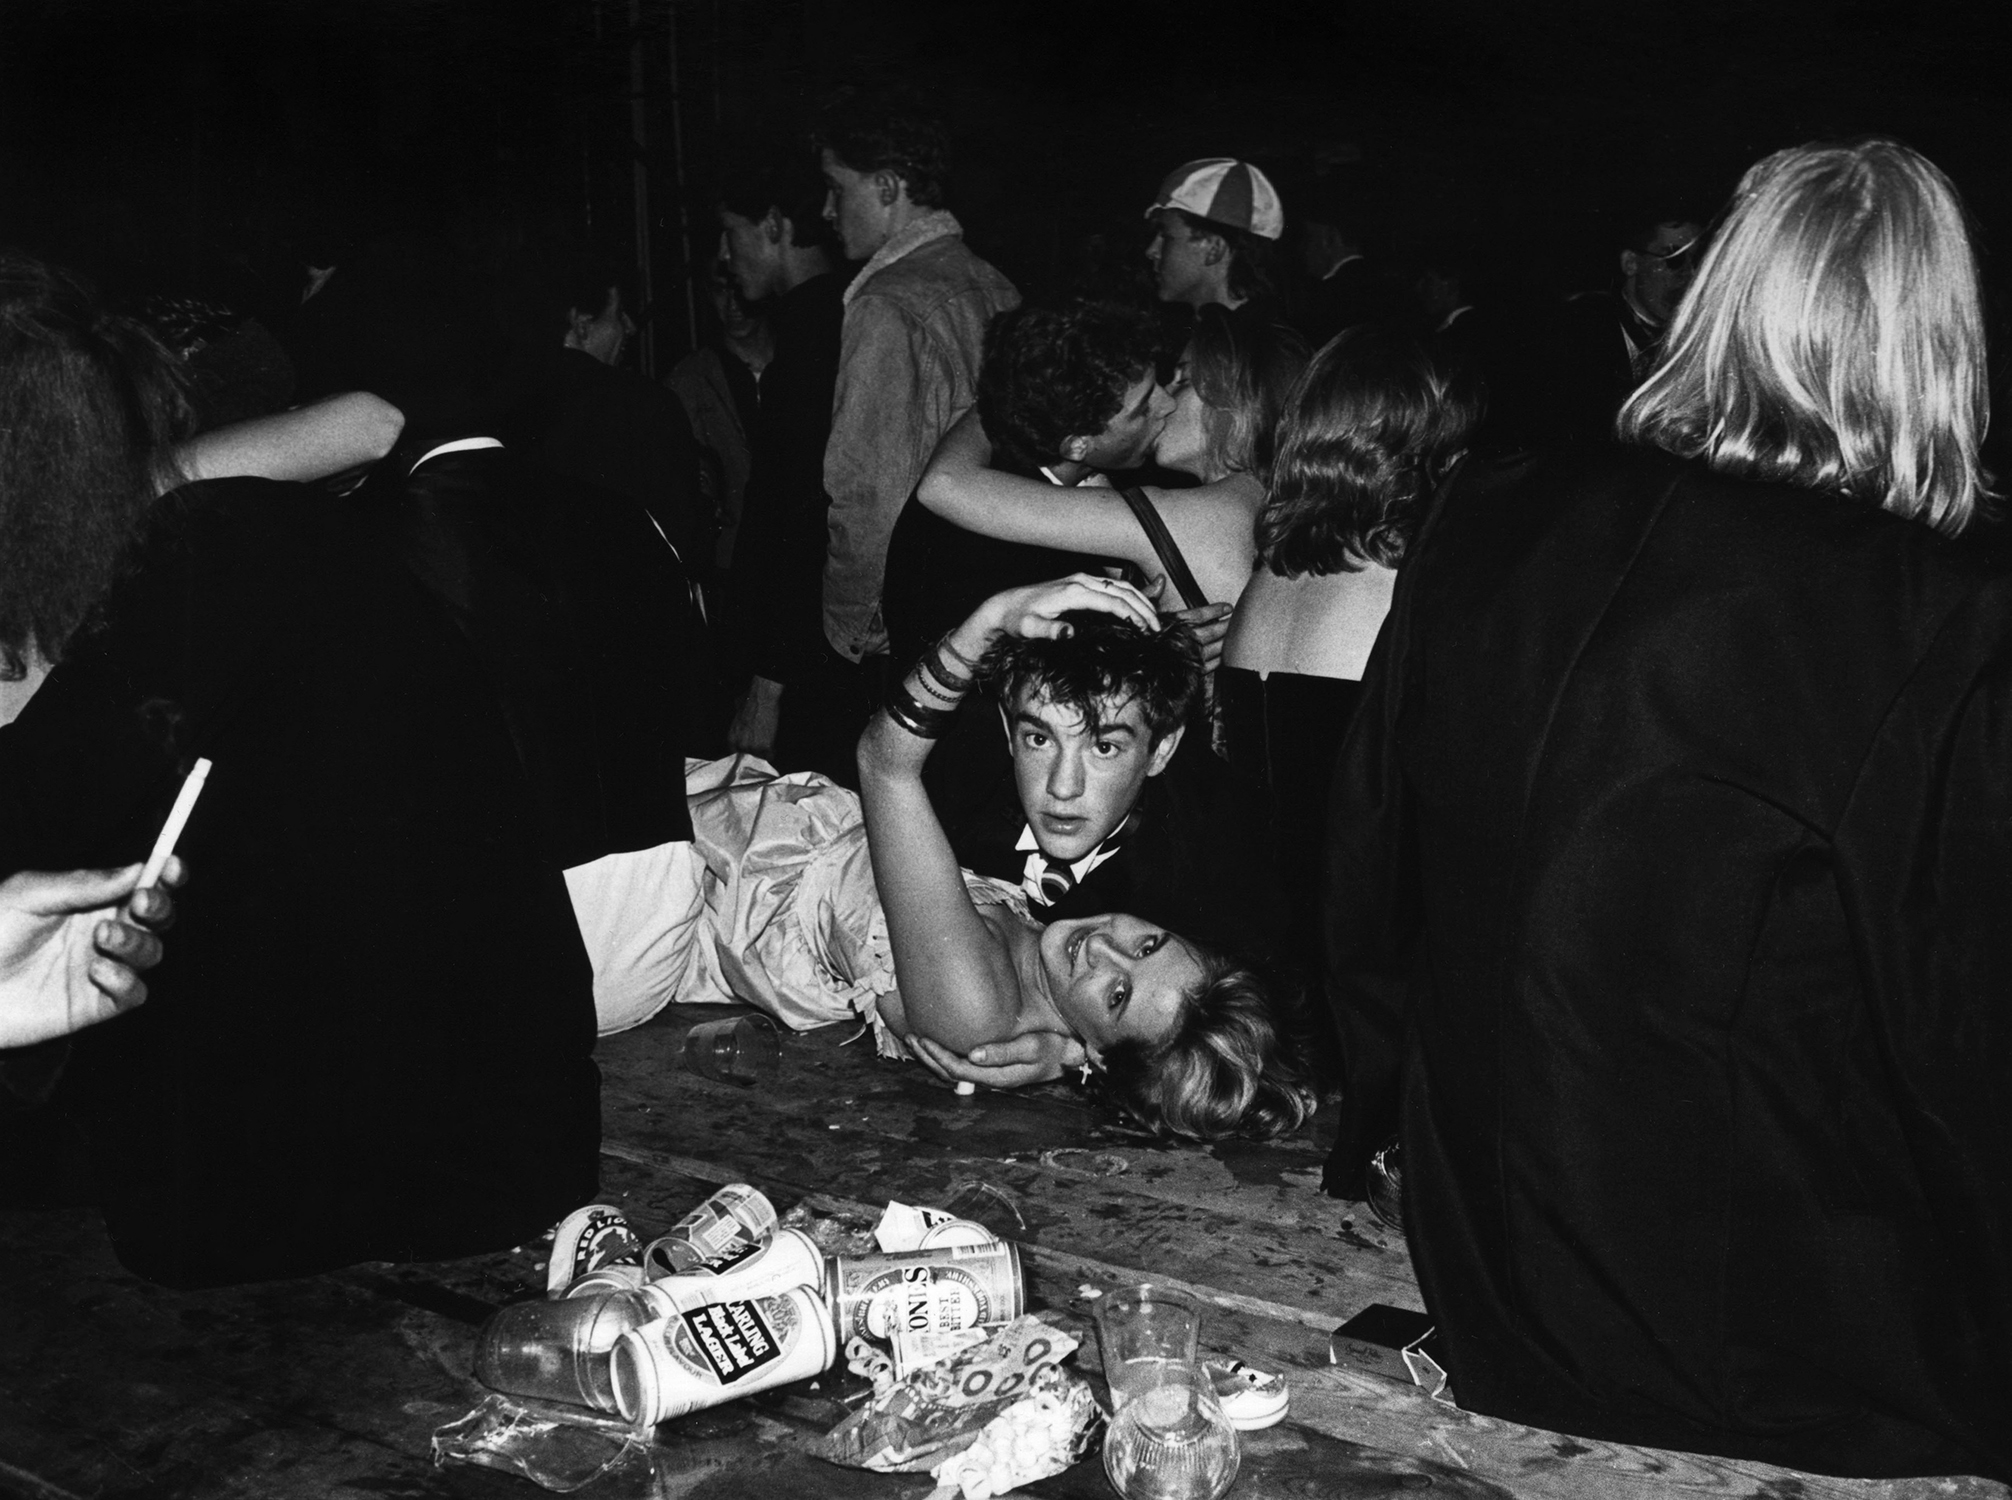 Halloween Ball 1987 © Dafydd Jones, from the book The Last Hurrah published by STANLEY/BARKER